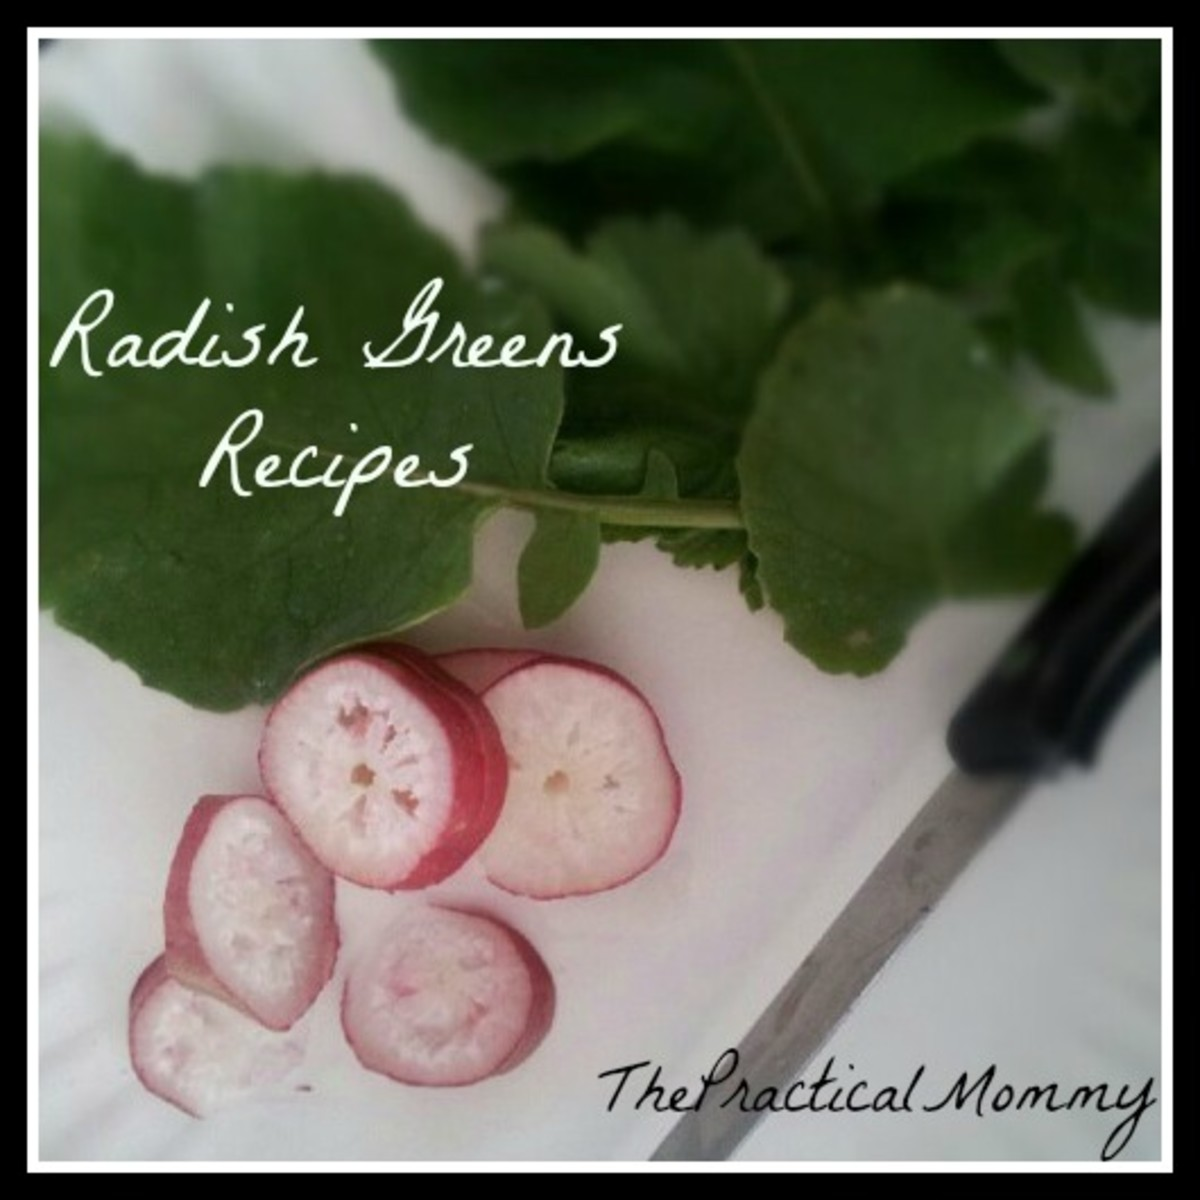 Delicious and Nutritious Radish Greens Recipes